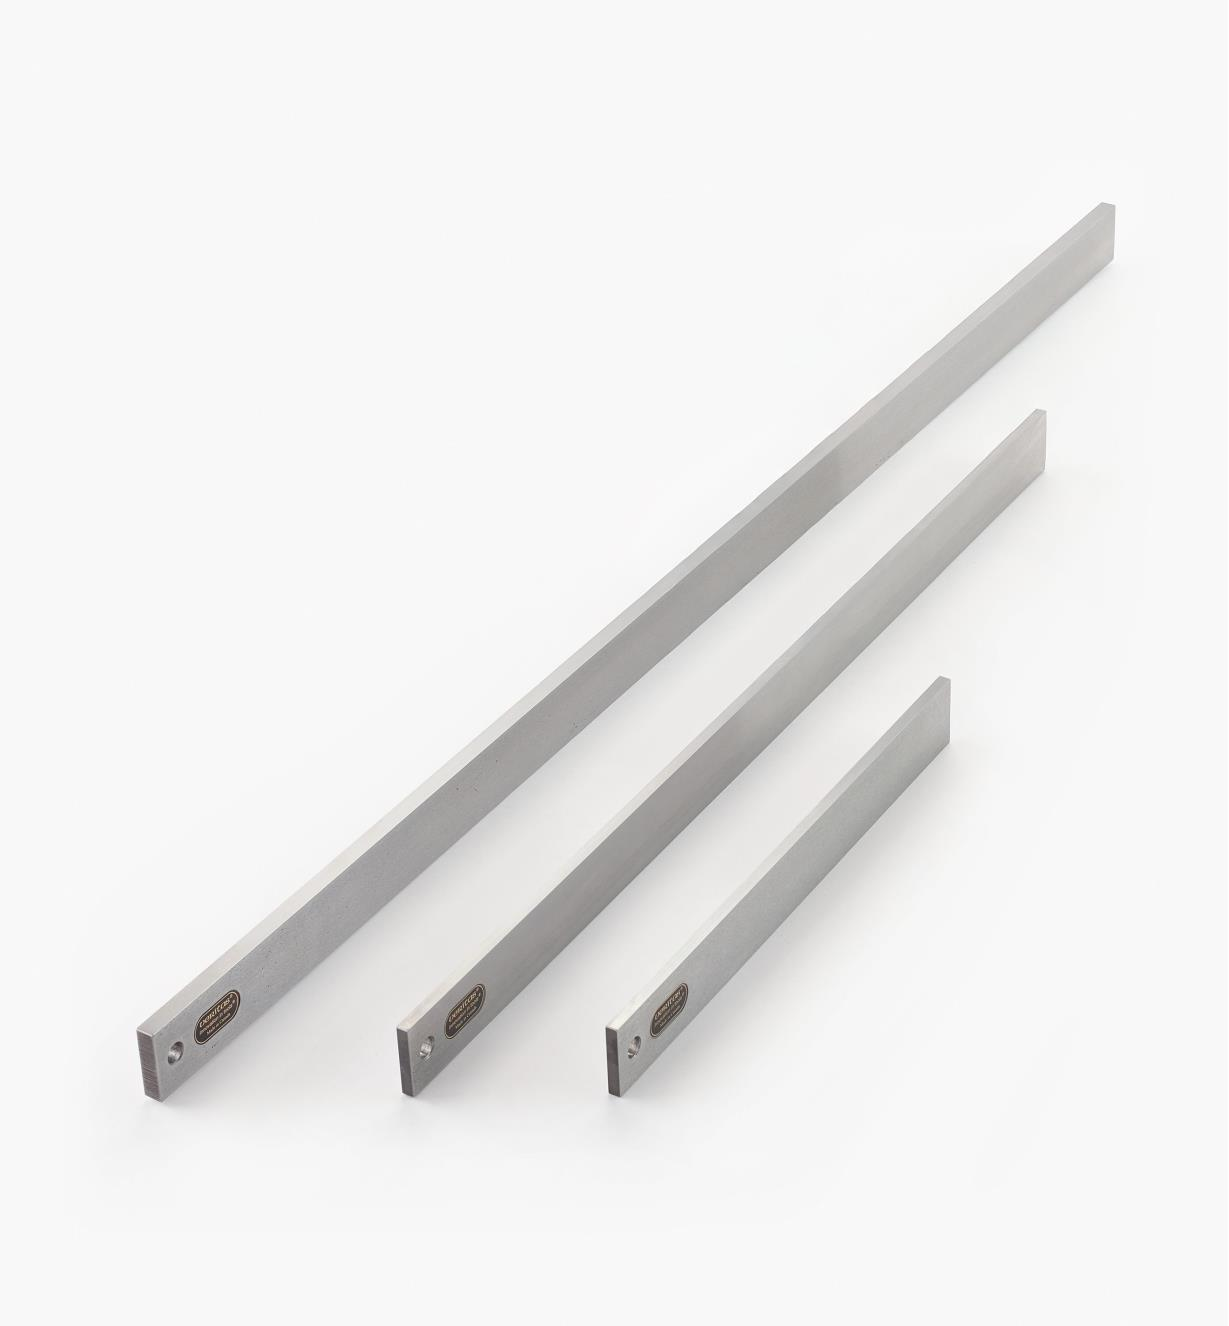 Veritas Steel Straightedges